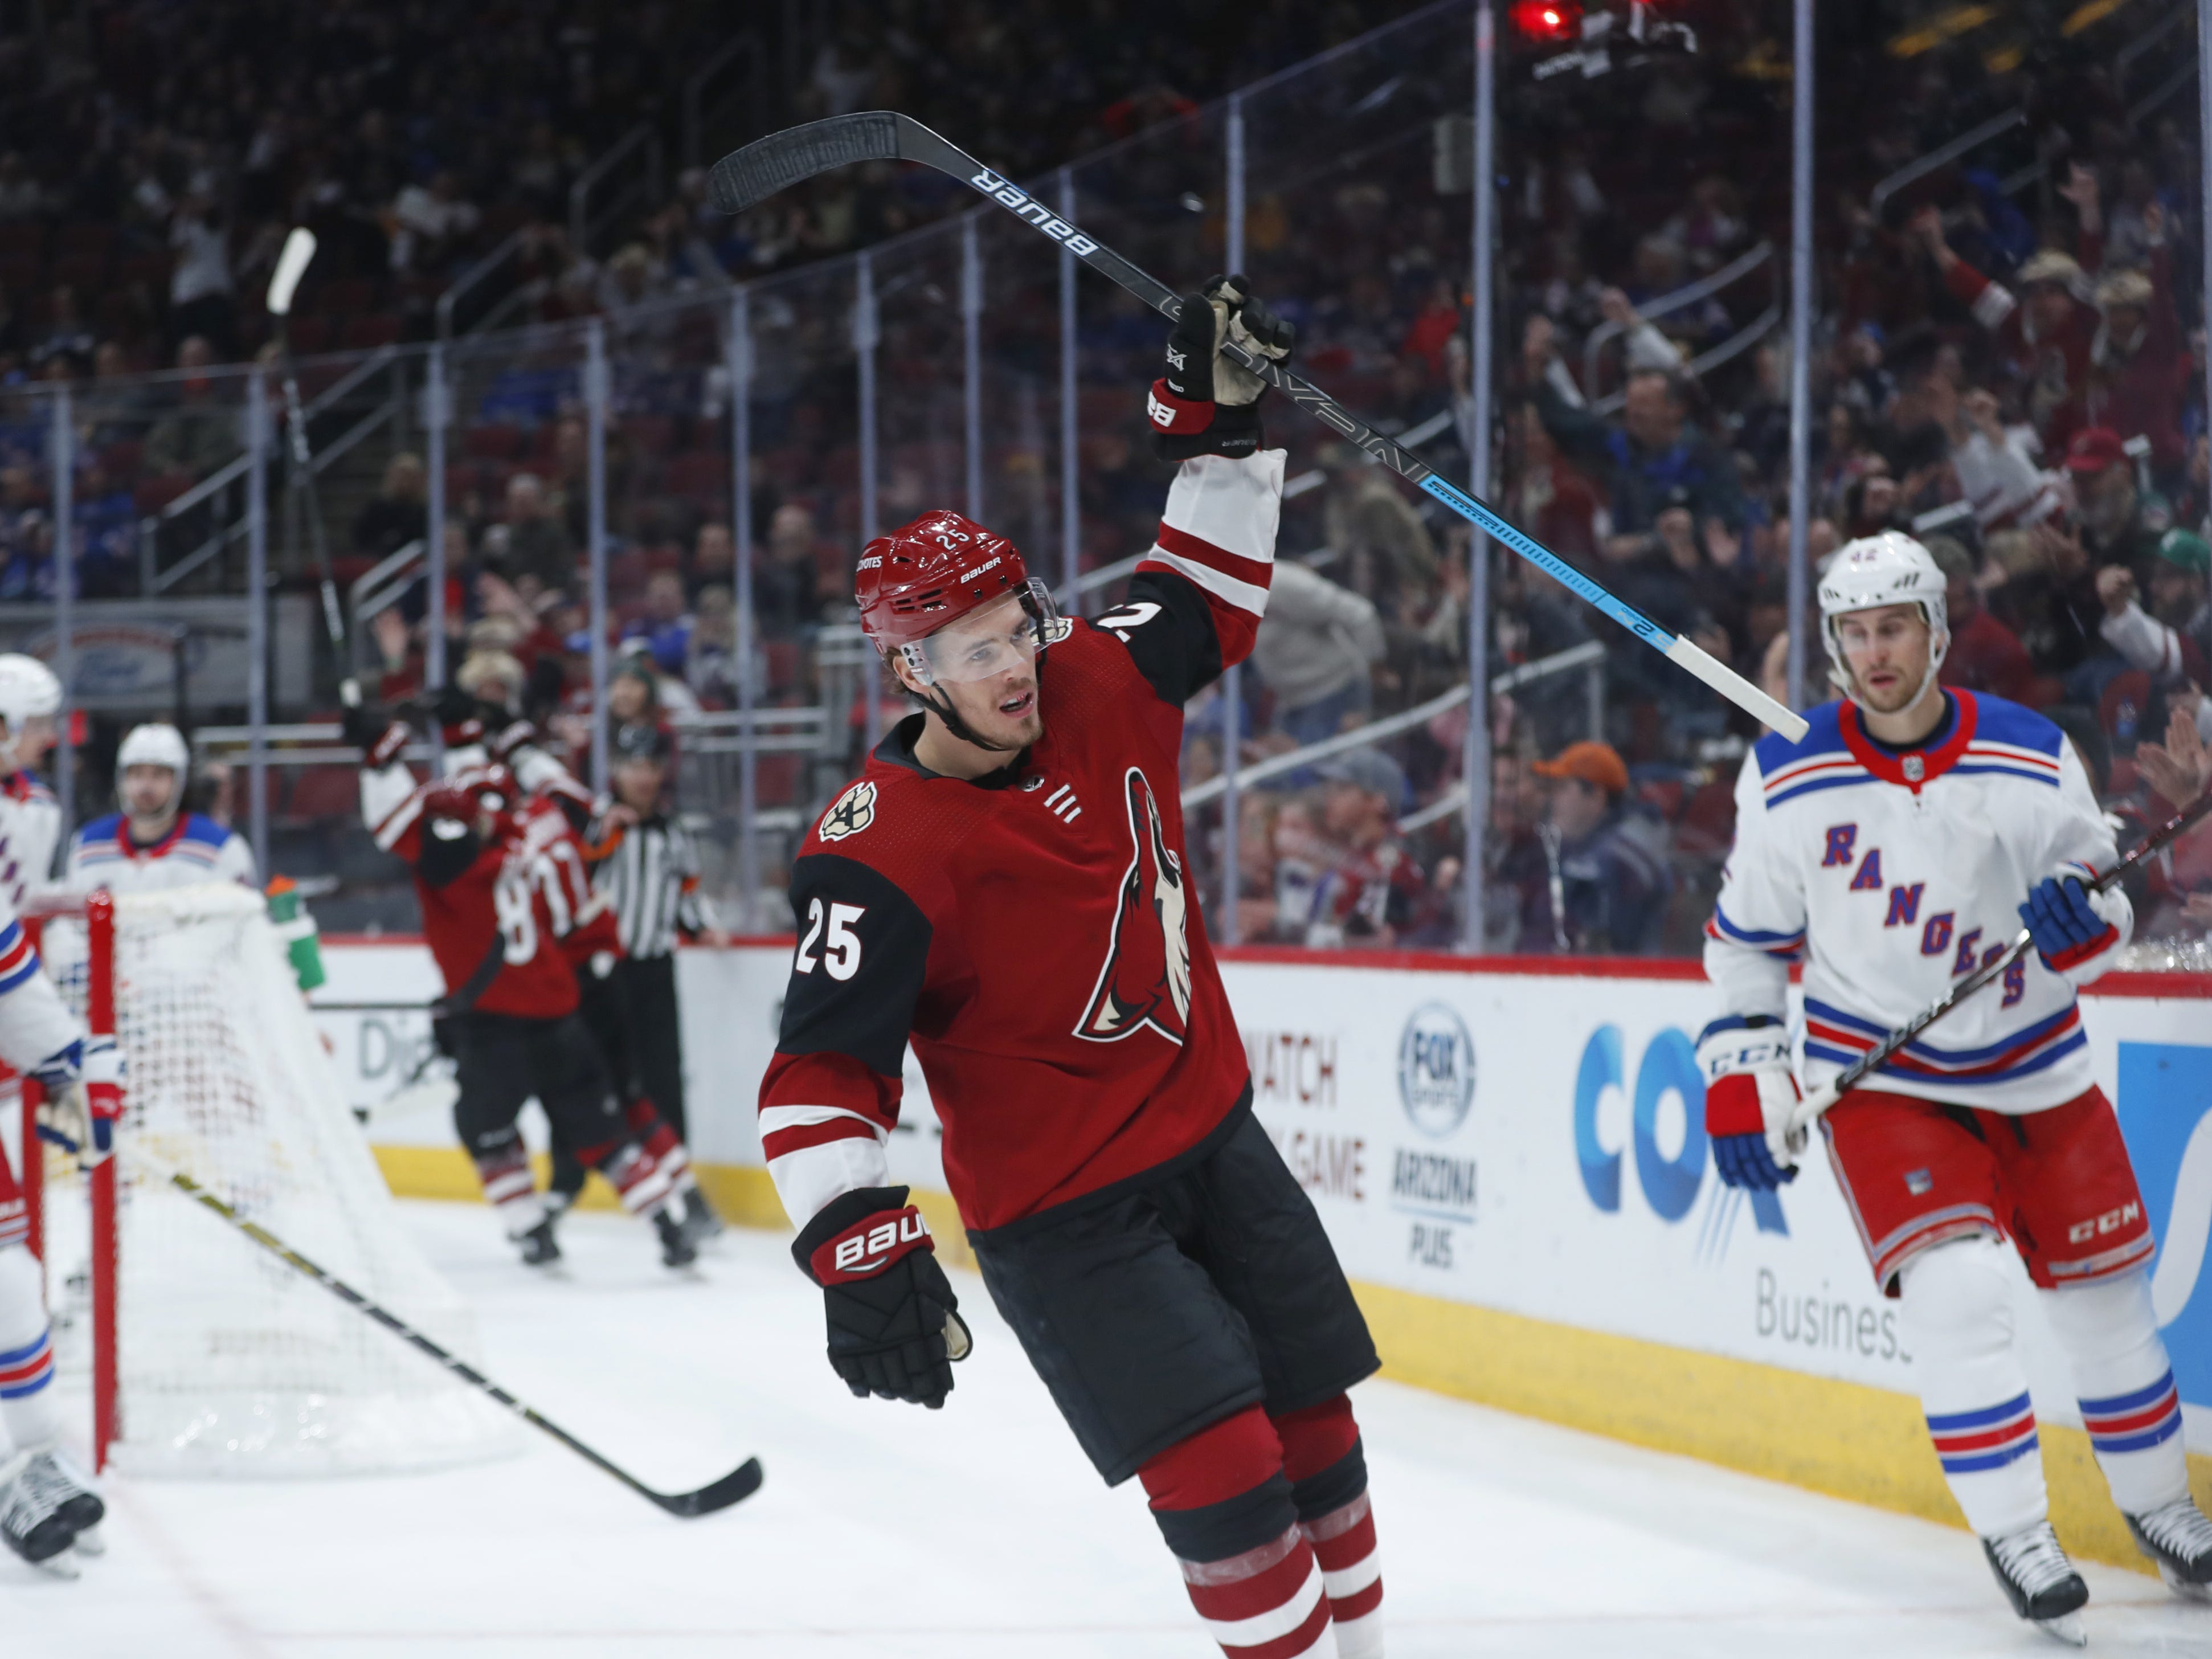 Coyotes' Nick Cousins (25) celebrates a goal against the Rangers during the second period at Gila River Arena in Glendale, Ariz. on January 6, 2019.